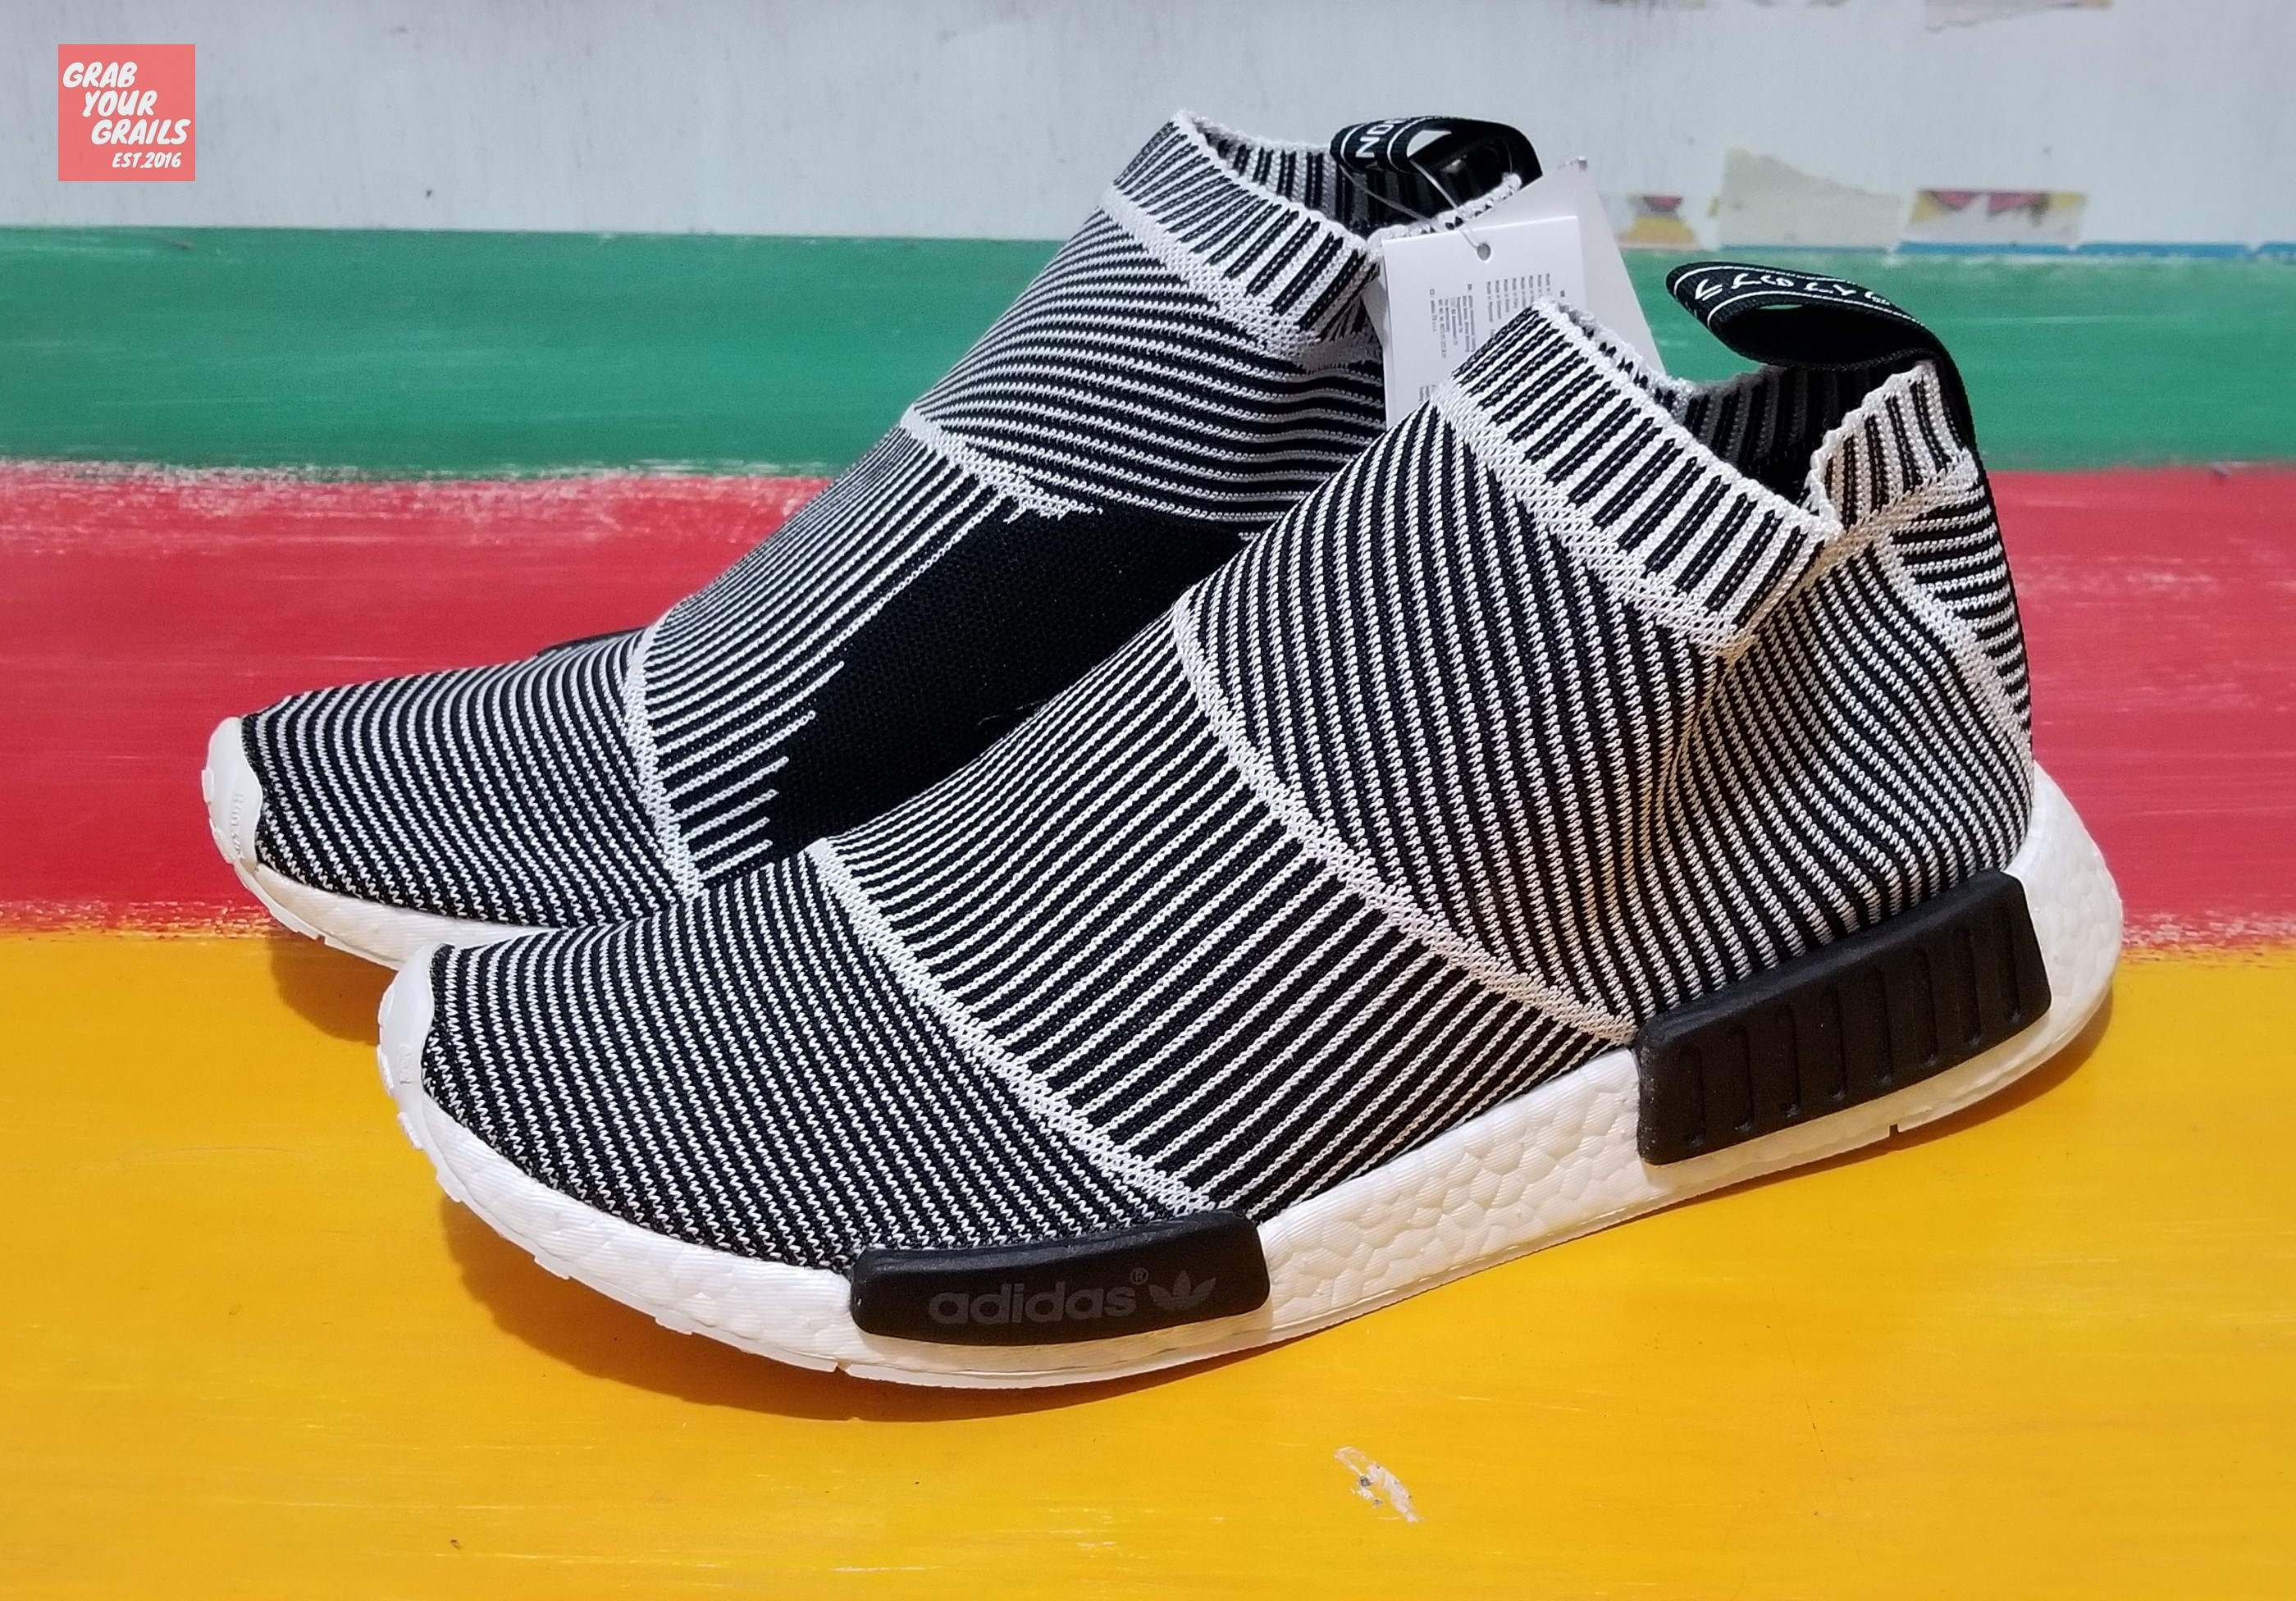 68c0ebeac Adidas ADIDAS NMD CITY SOCK CORE BLACK Size 10.5 - Hi-Top Sneakers for Sale  - Grailed